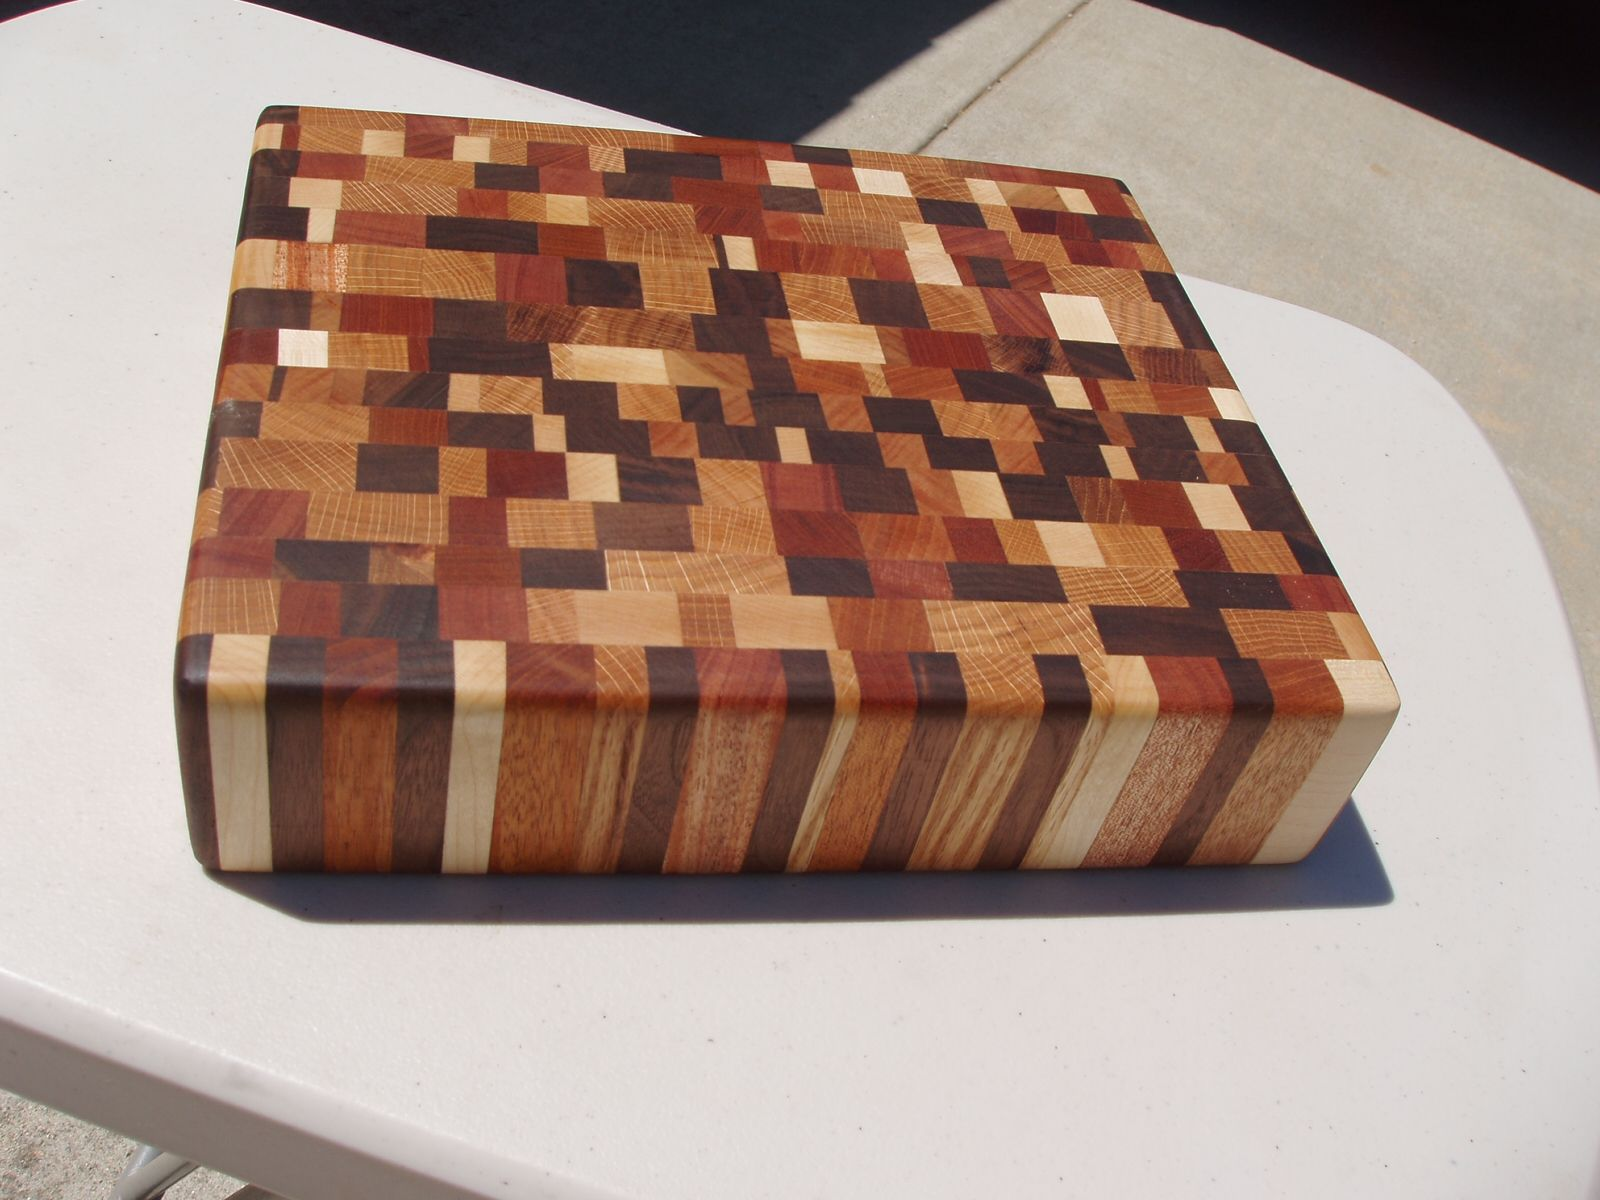 how to make a chess cutting board